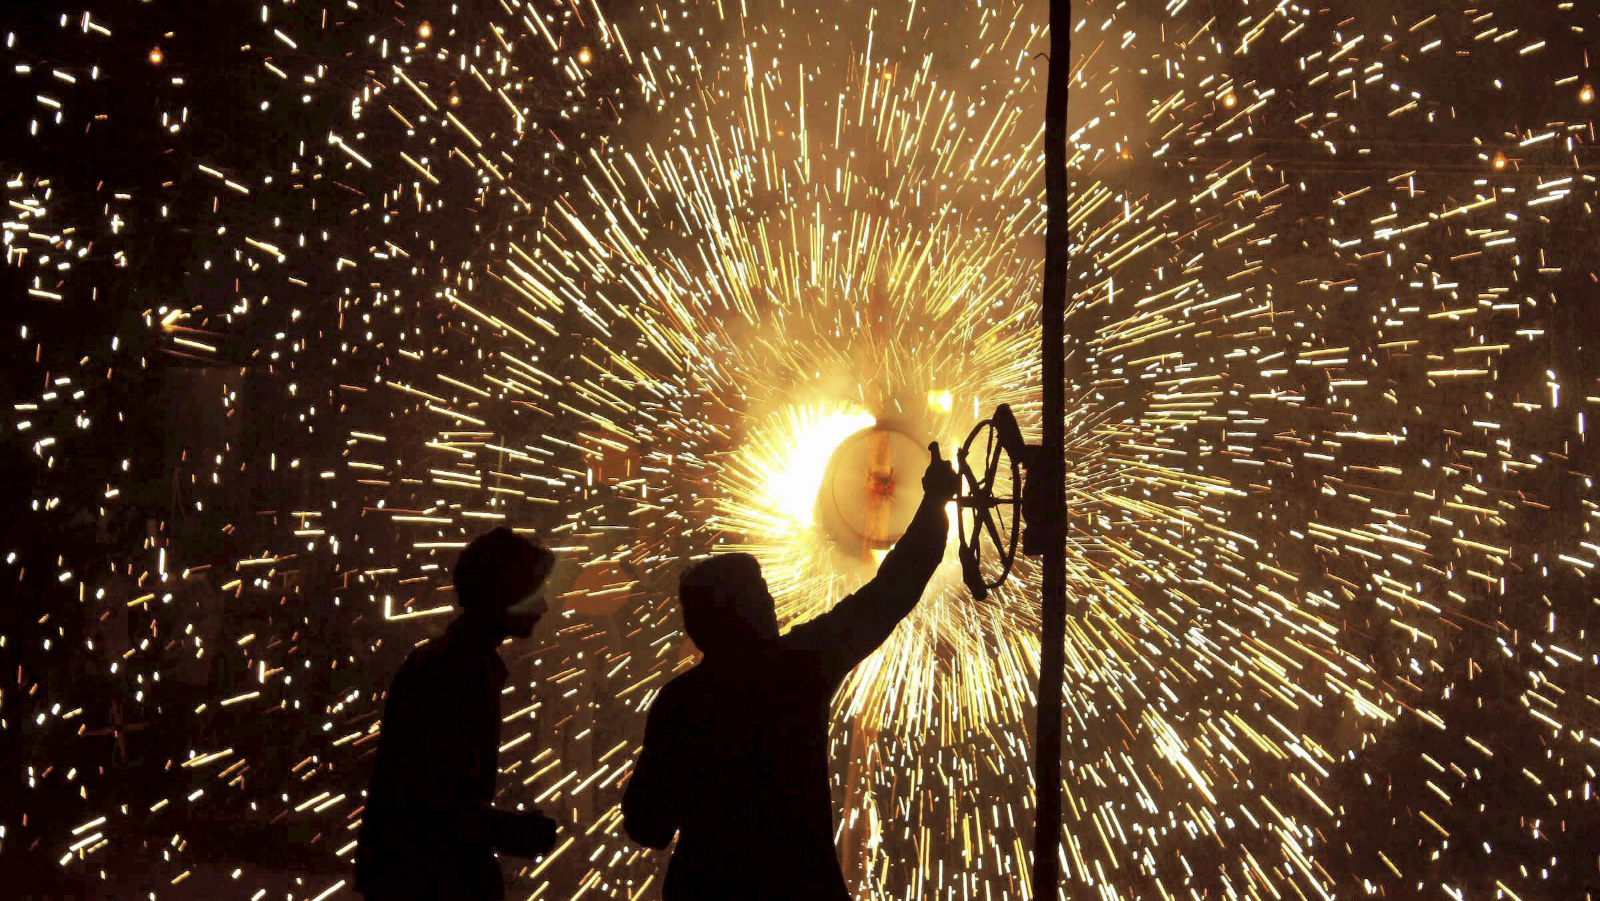 People light fireworks during Diwali celebrations in Gurgaon, India. Diwali, the festival of lights was celebrated on Oct. 17.